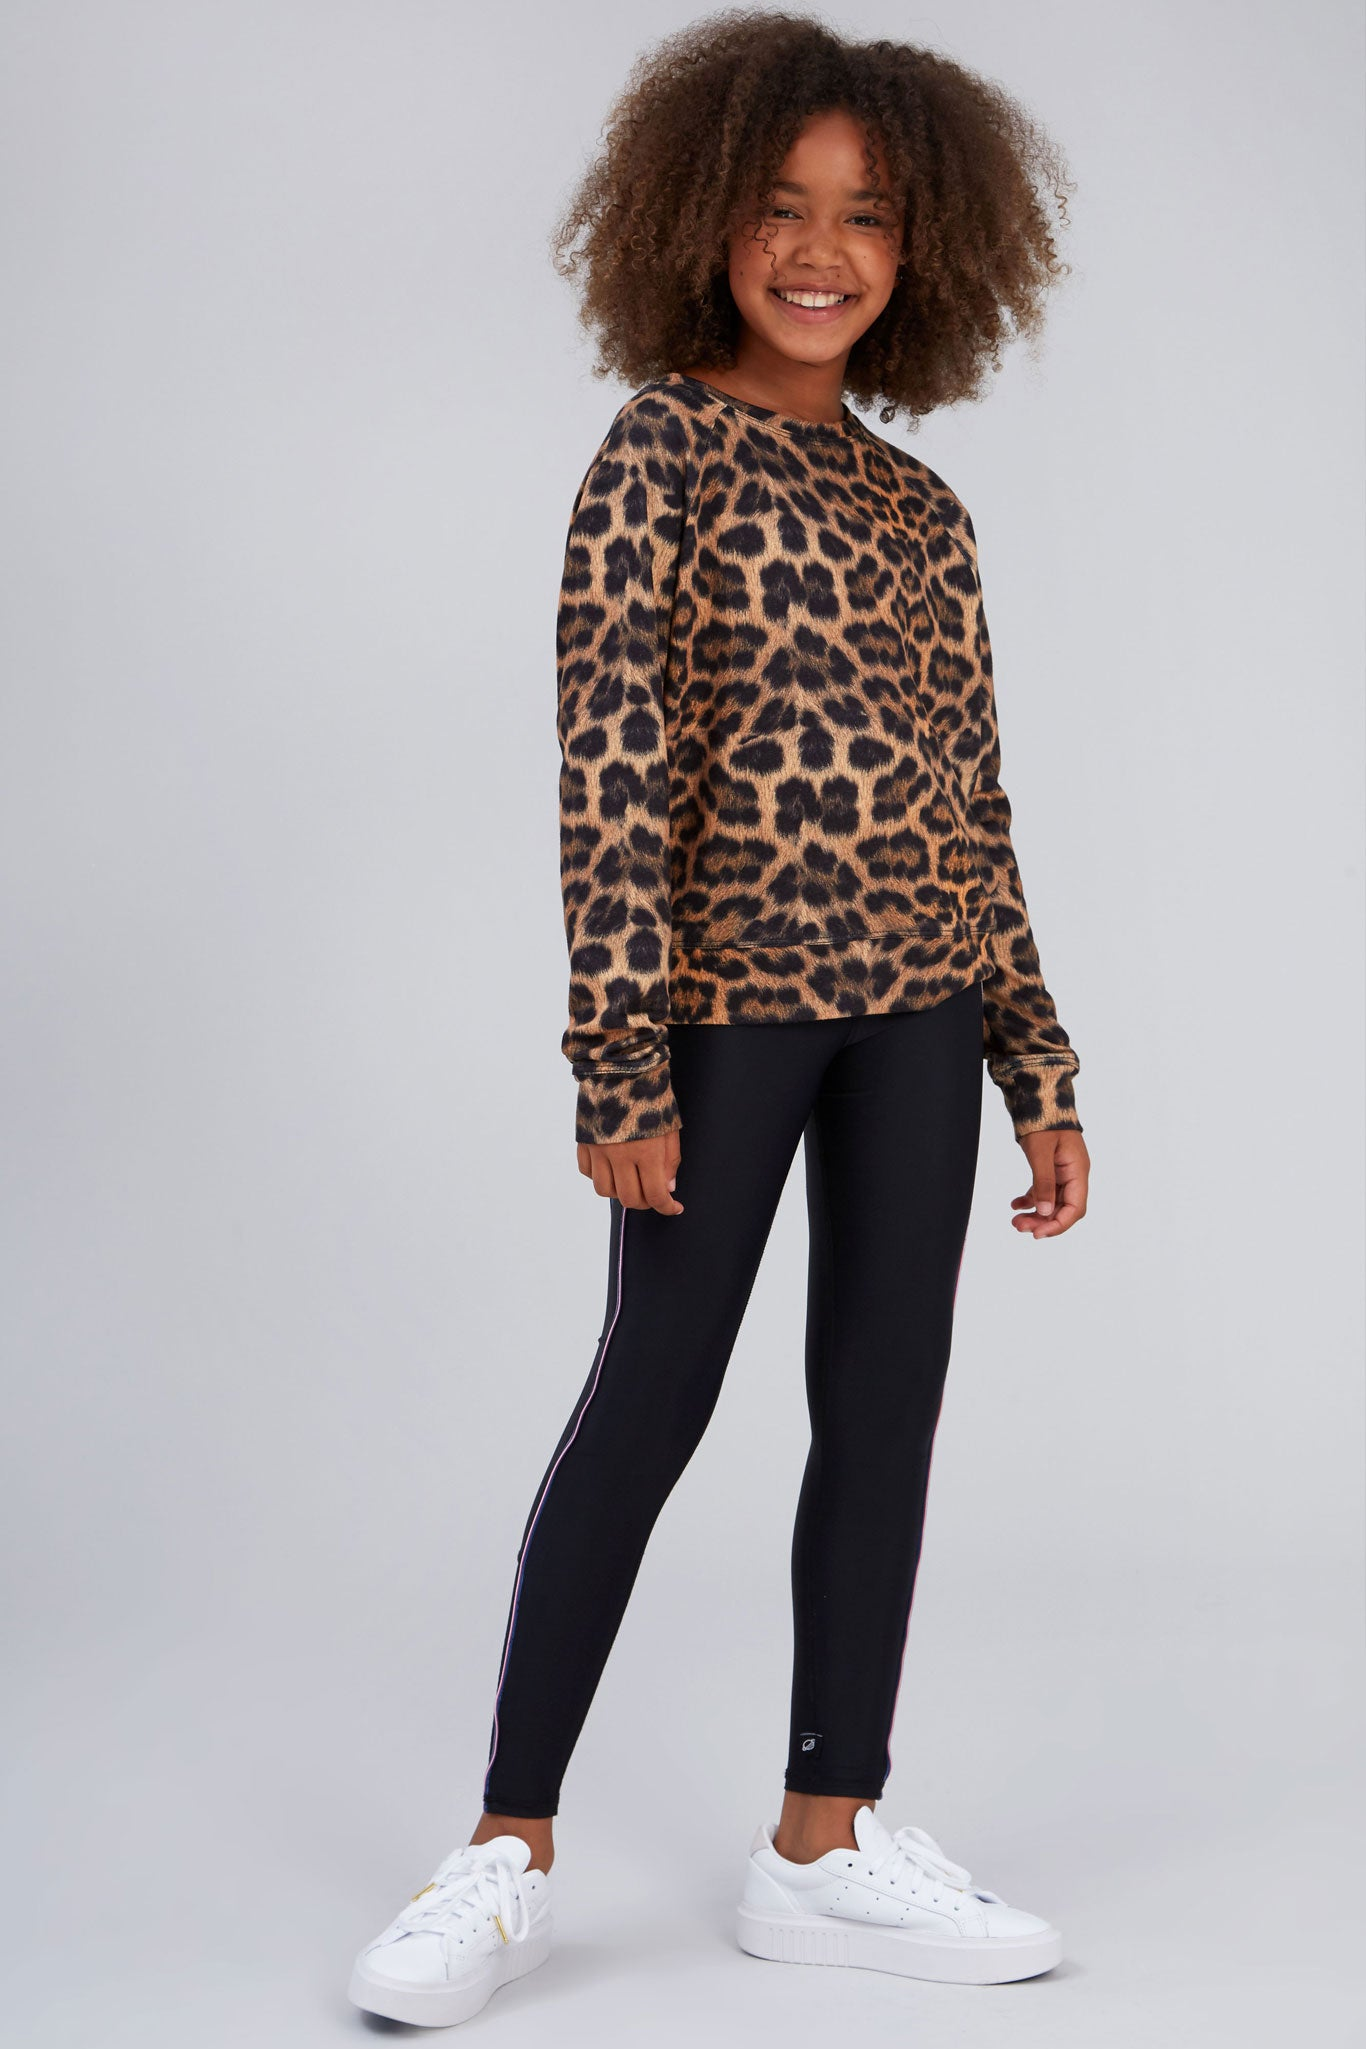 Girls Leopard Goals Sweatshirt